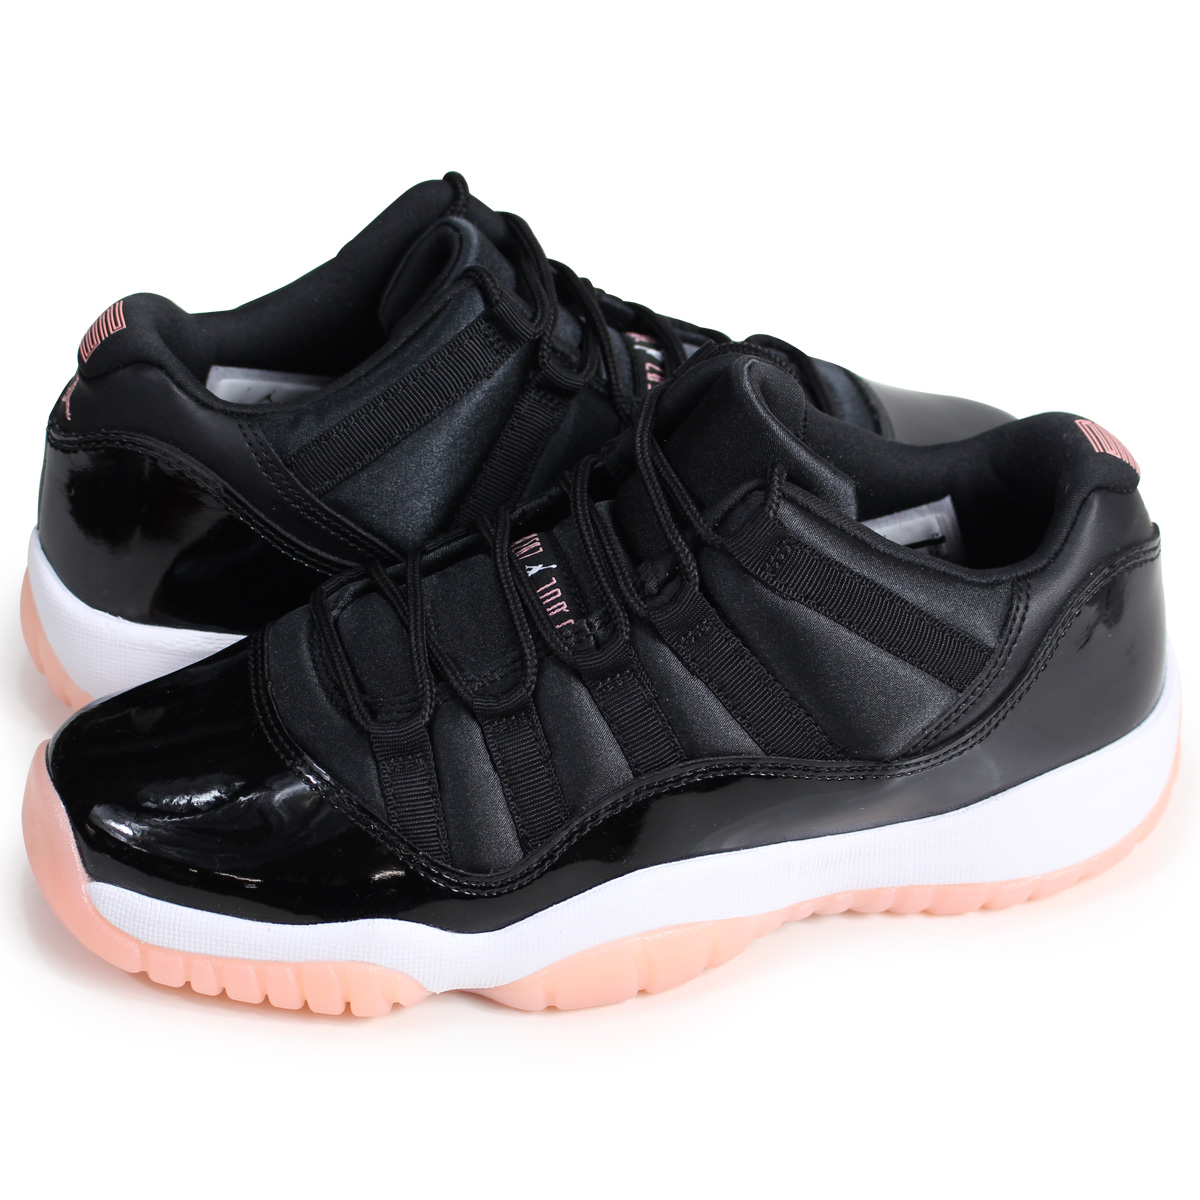 a6a9e55fb0cc Whats up Sports  NIKE AIR JORDAN 11 RETRO LOW GG Nike Air Jordan 11 ...